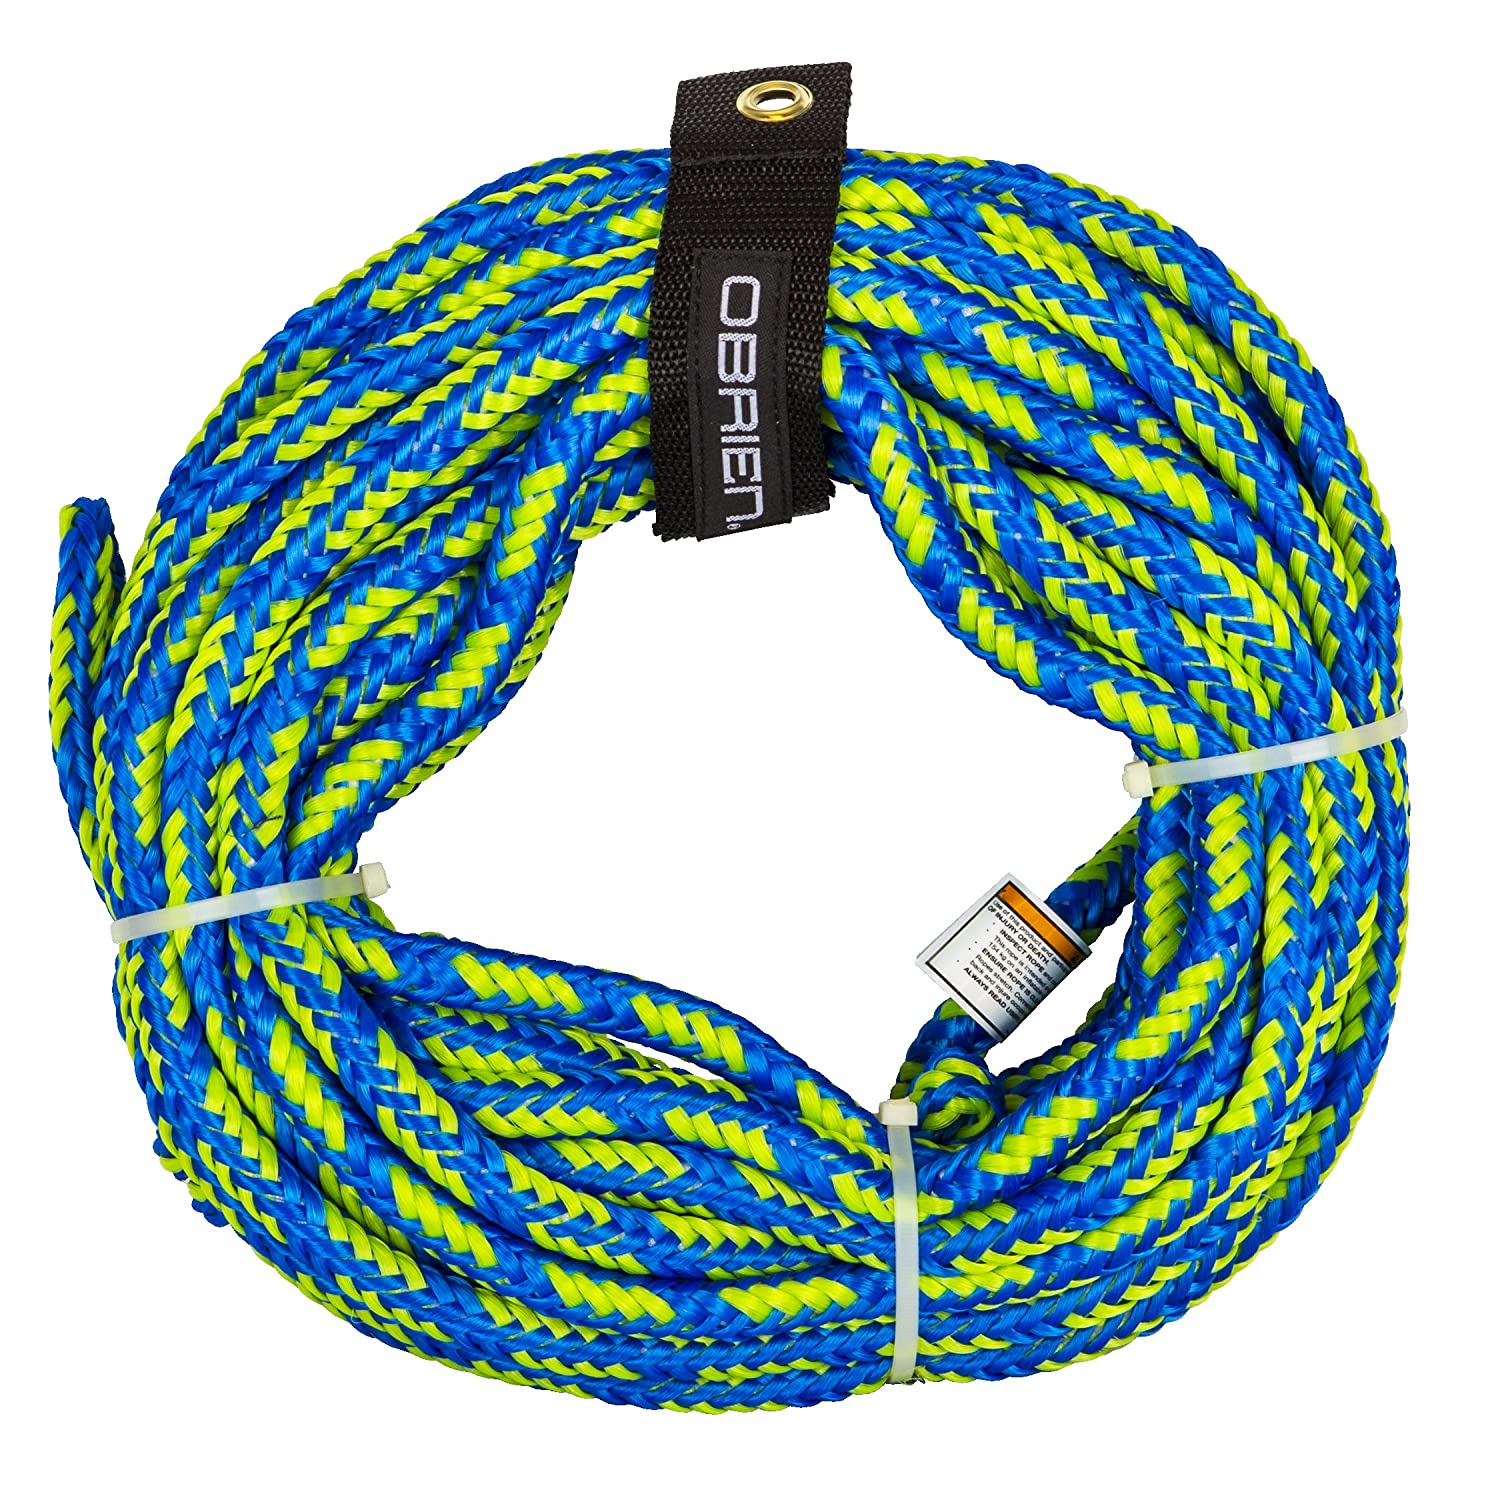 O'Brien 2 Person Floating Towable Tube Rope, Yellow Motion Water Sports Inc. 2174566